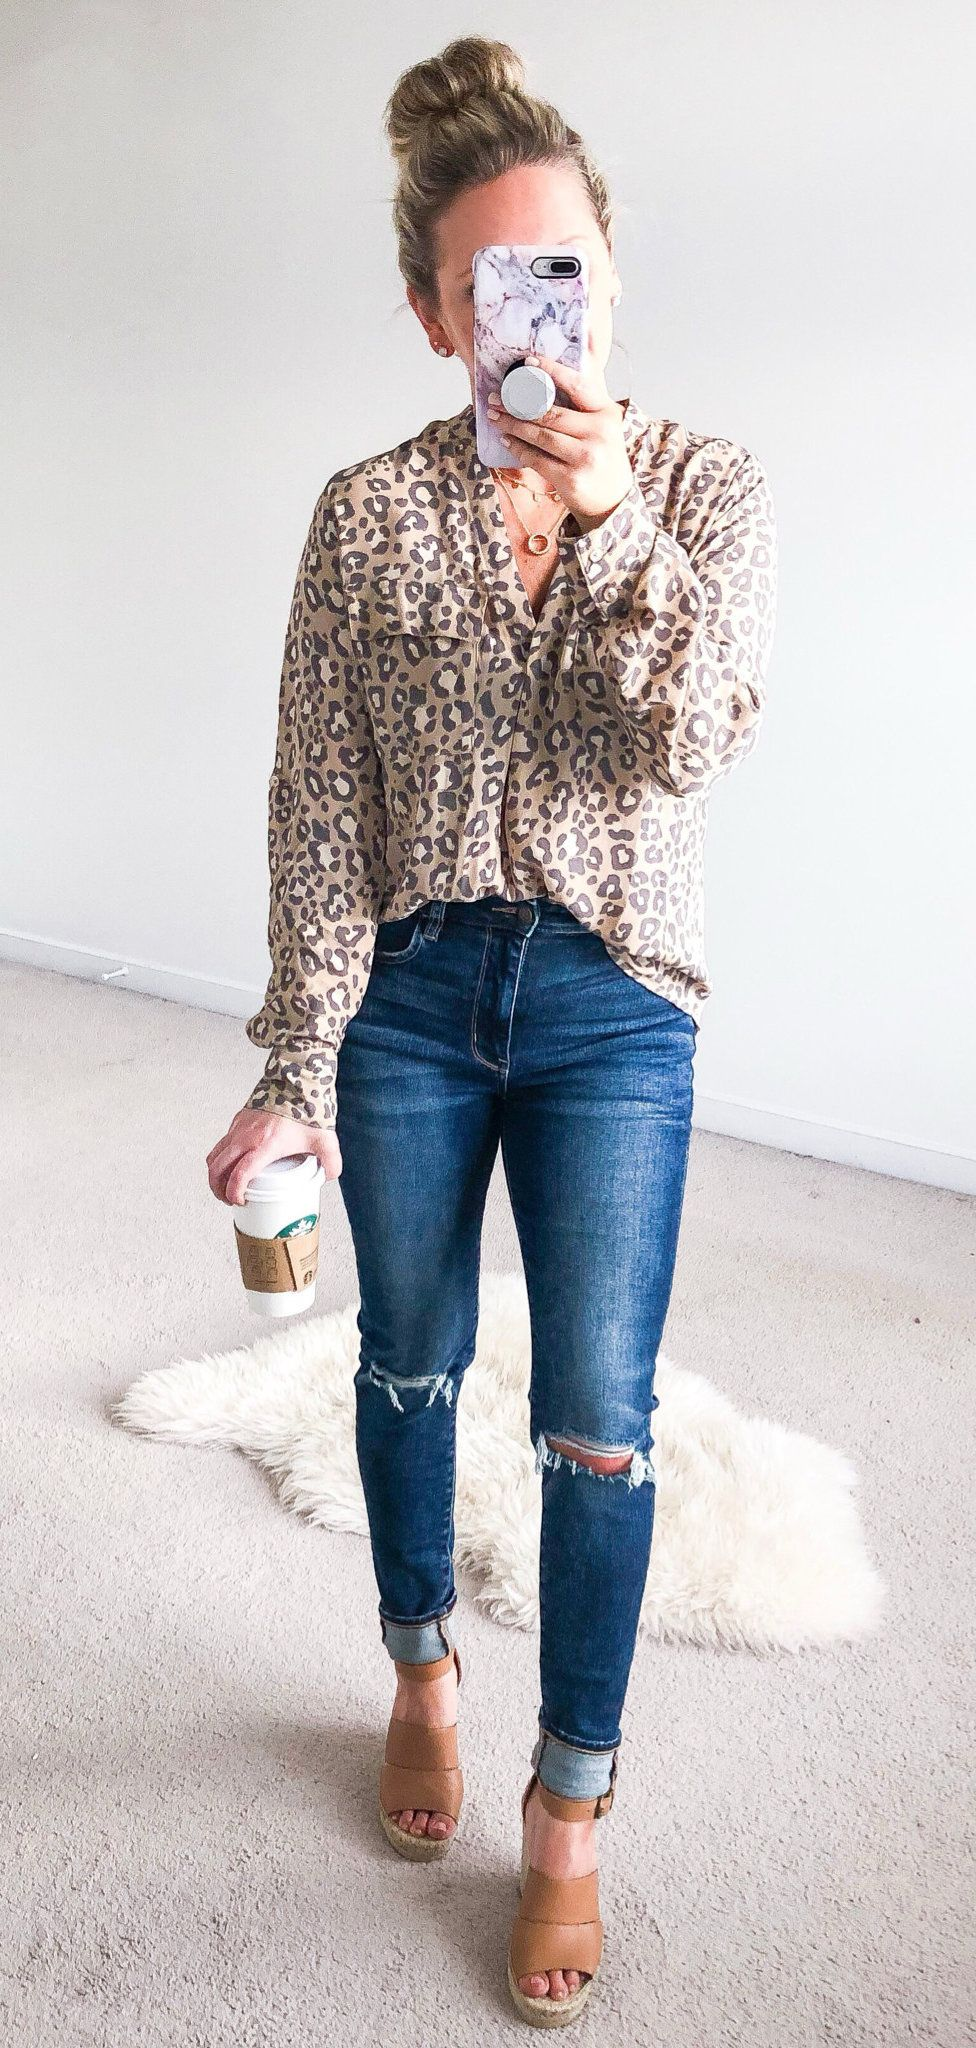 brown and gray long-sleeved button-up shirt and blue denim jeans #spring #outfits